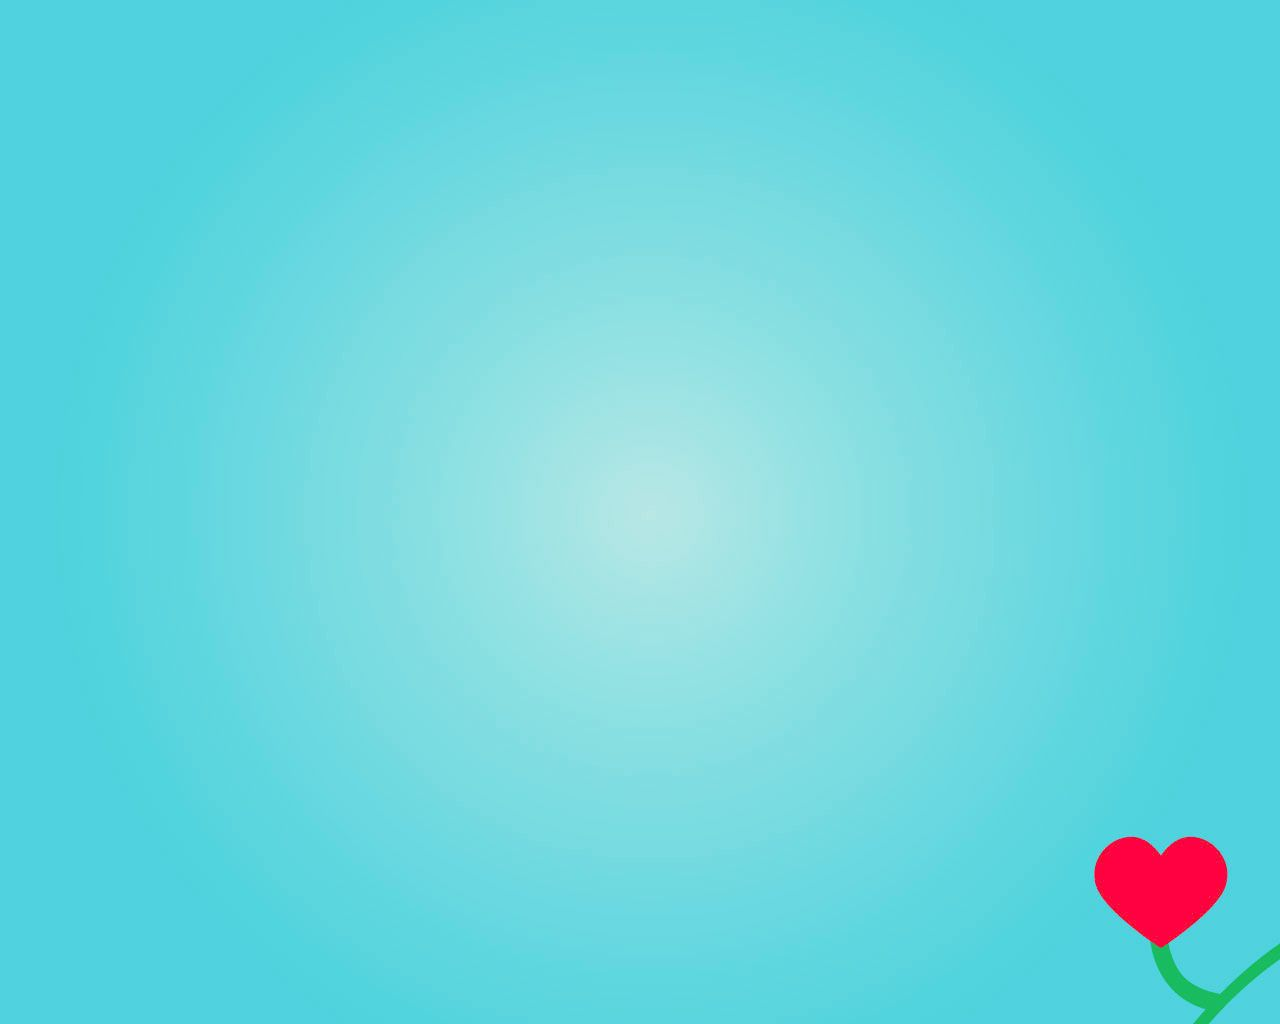 Sweet heart clipart background for powerpoint templatesg 1280 sweet heart clipart background for powerpoint templatesg toneelgroepblik Images